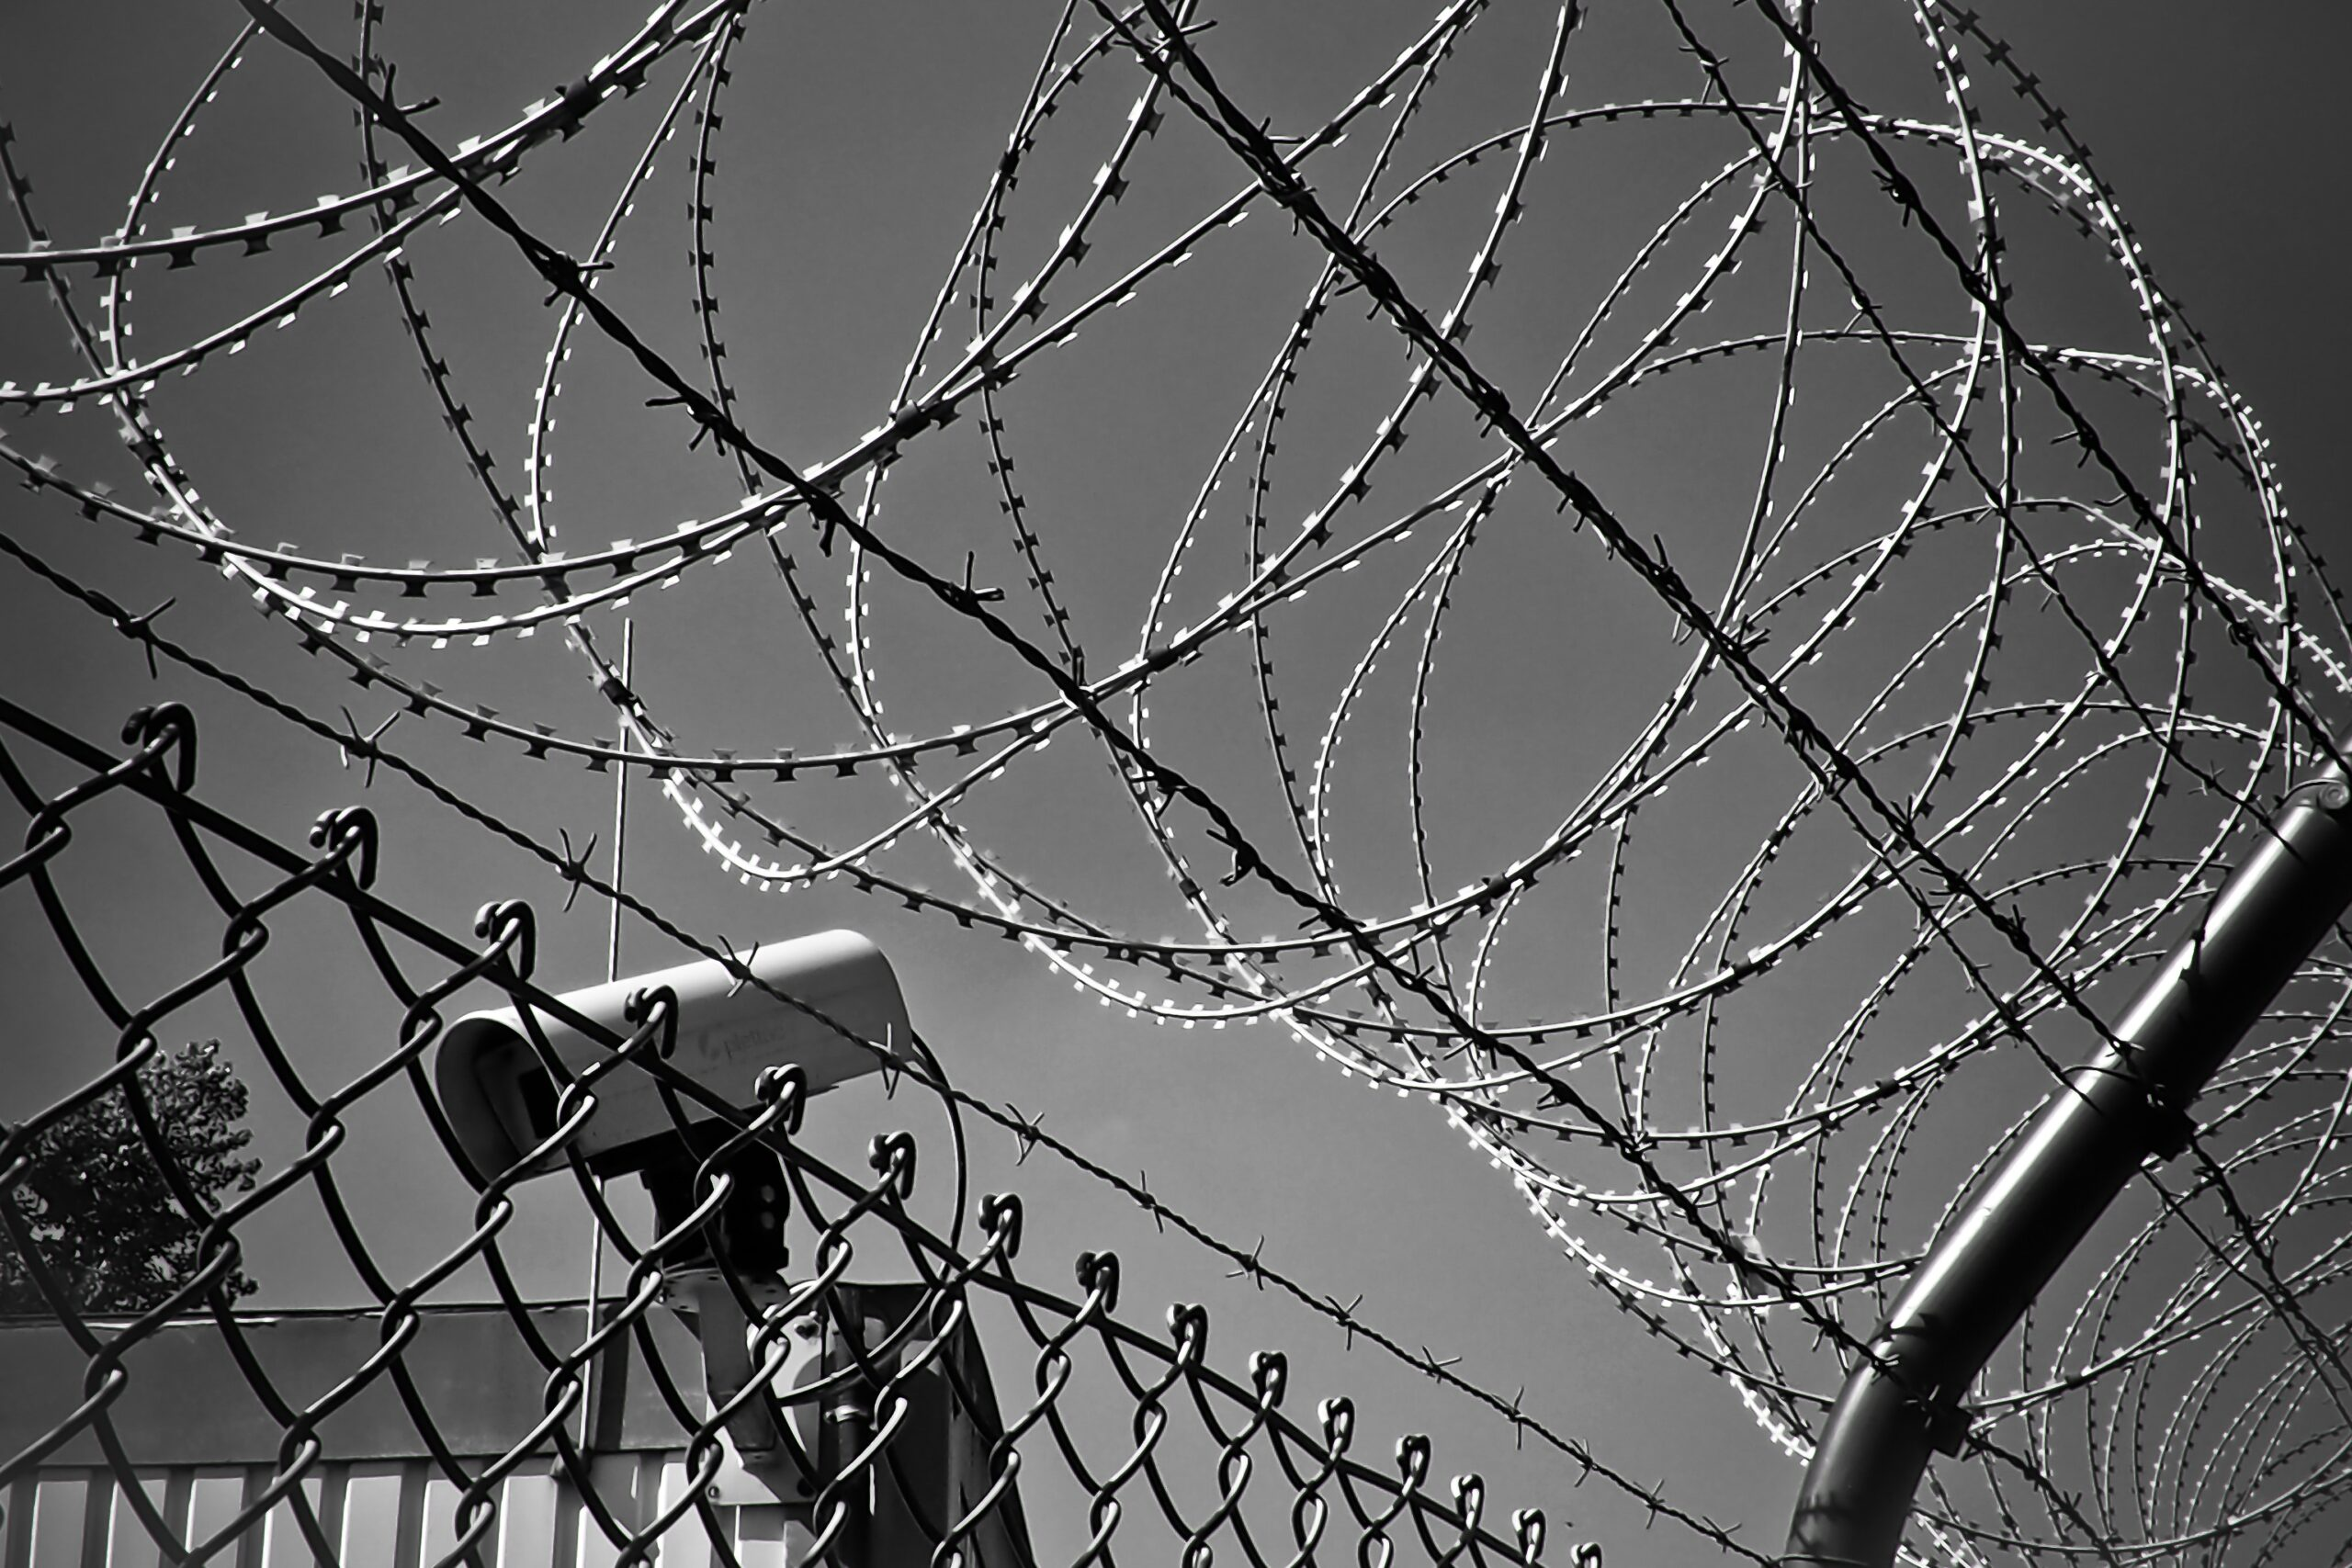 abstract-barbed-wire-black-white-black-and-white-274886